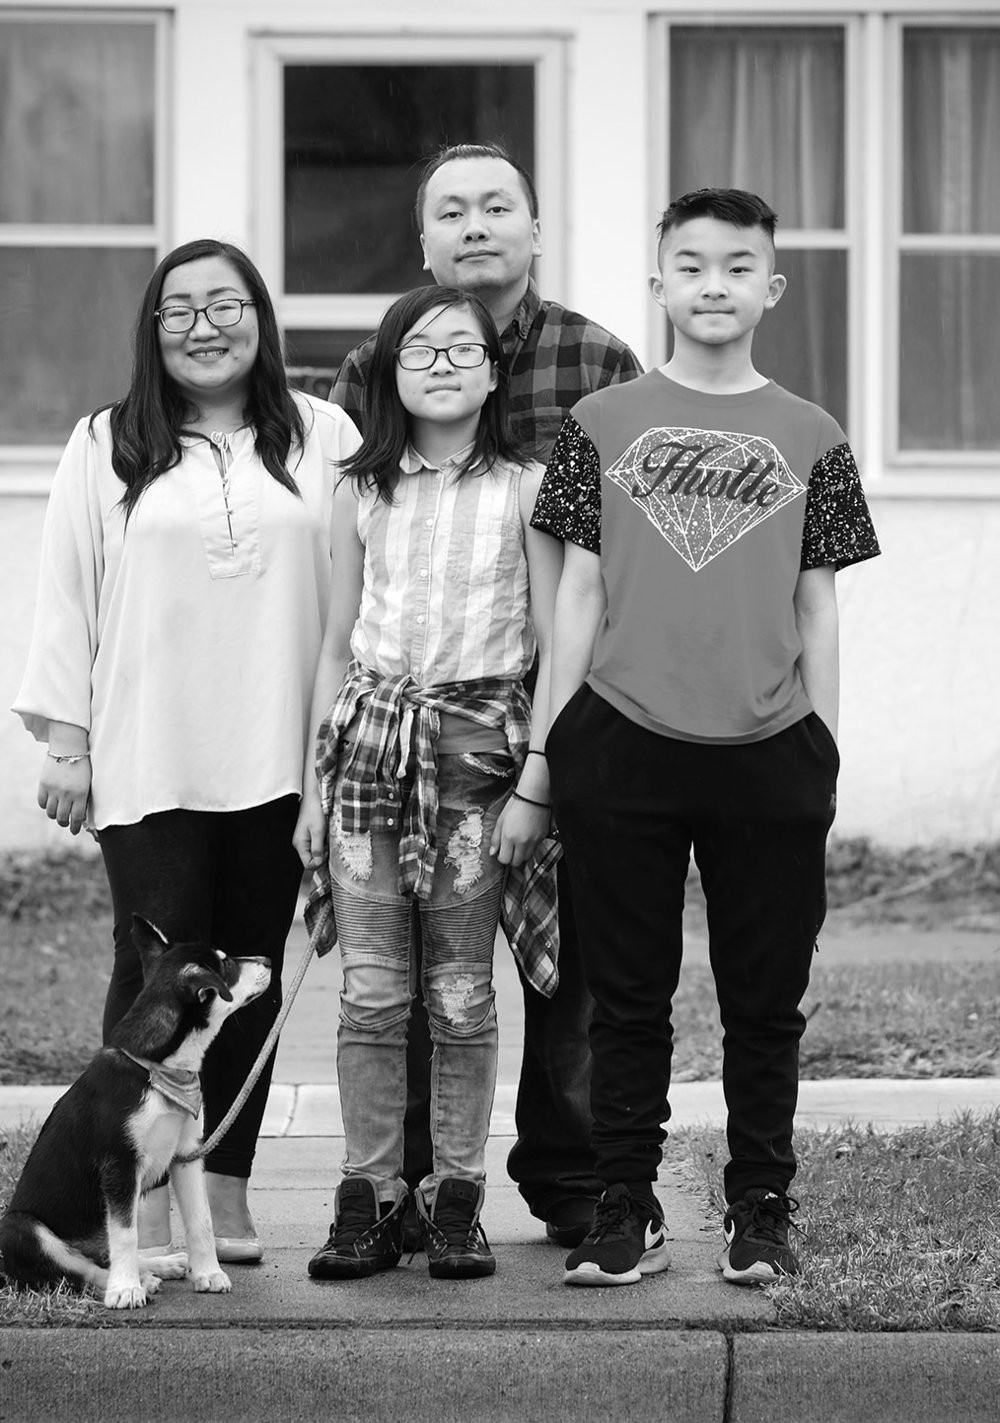 We were living in a shelter before PPL. Now I have my degree and my dream job, and we just bought our first home. - Mai Xiong